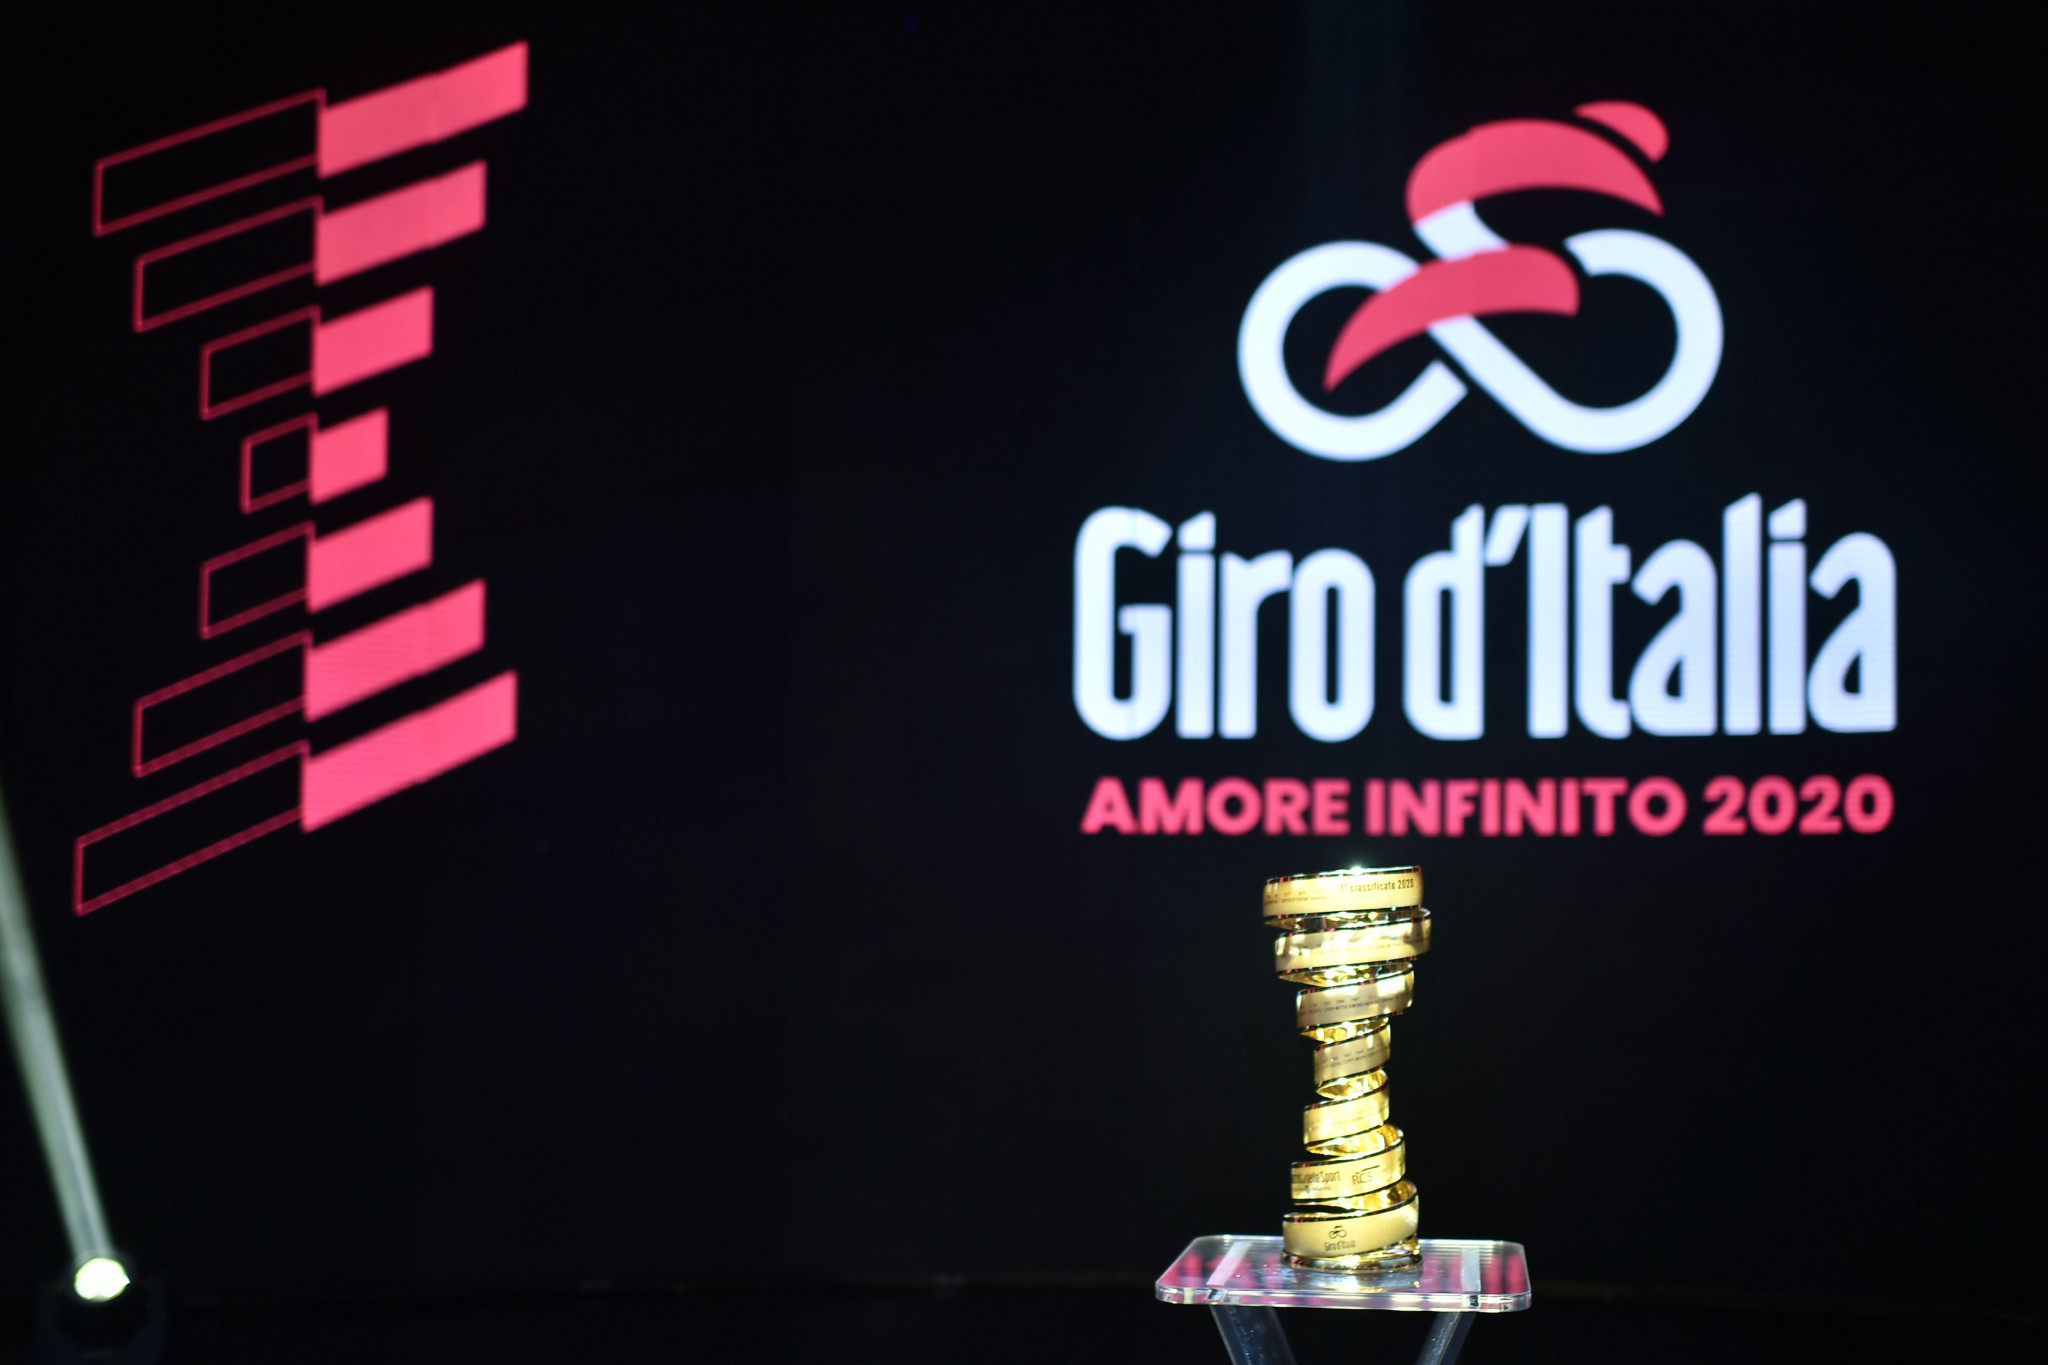 The Giro d'Italia is among the key cycling events to have been impacted by coronavirus ©Getty Images